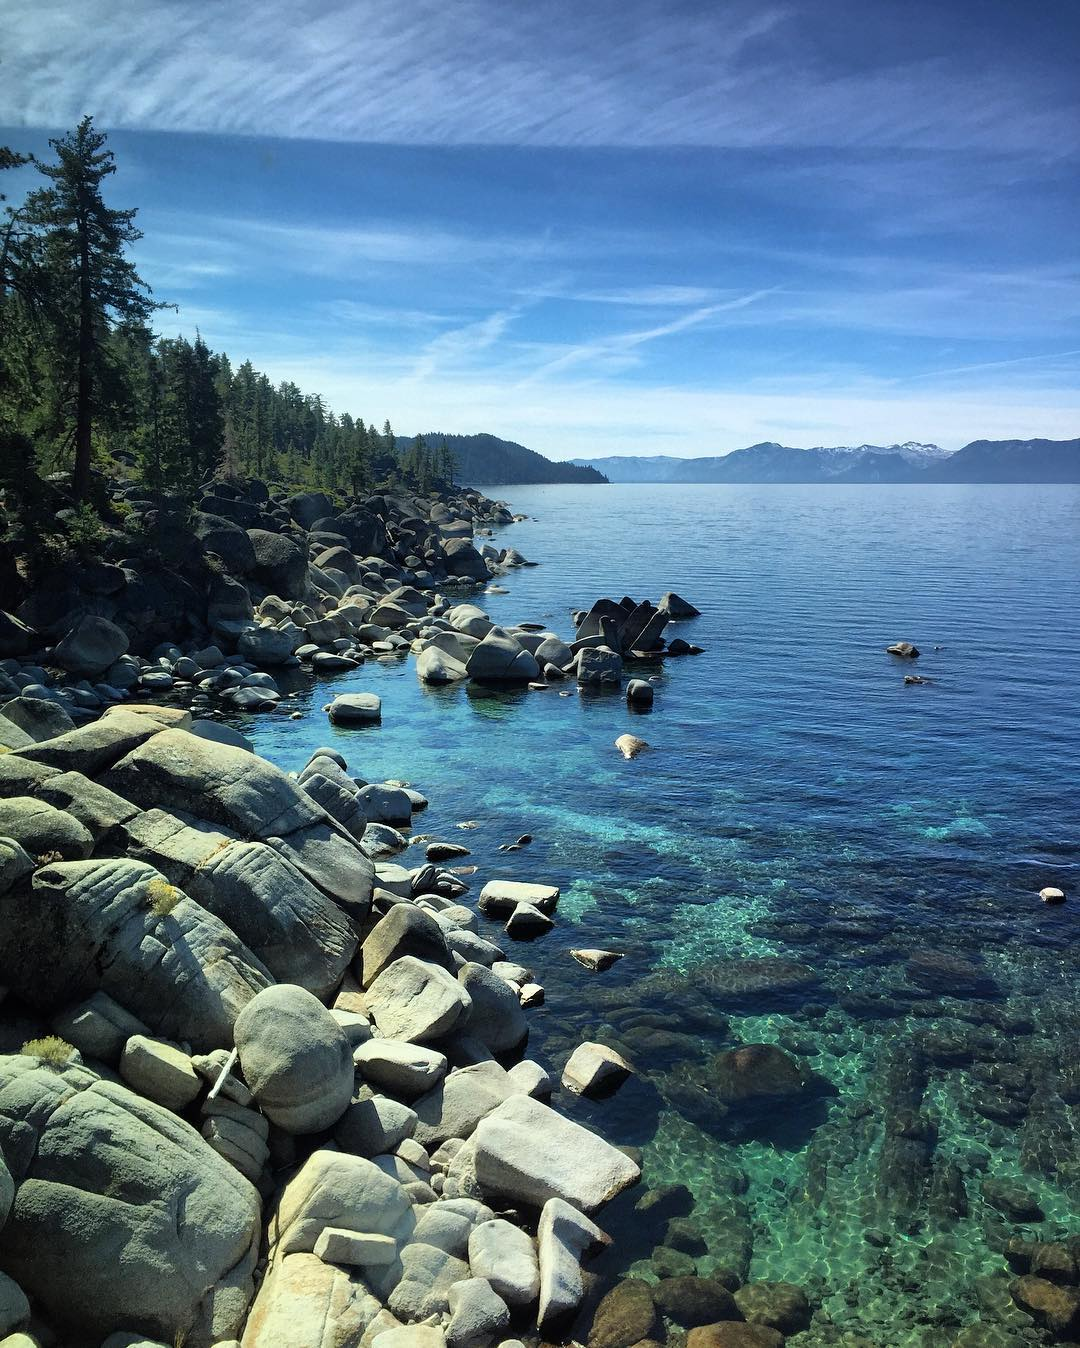 It's a beautiful day at Lake Tahoe.